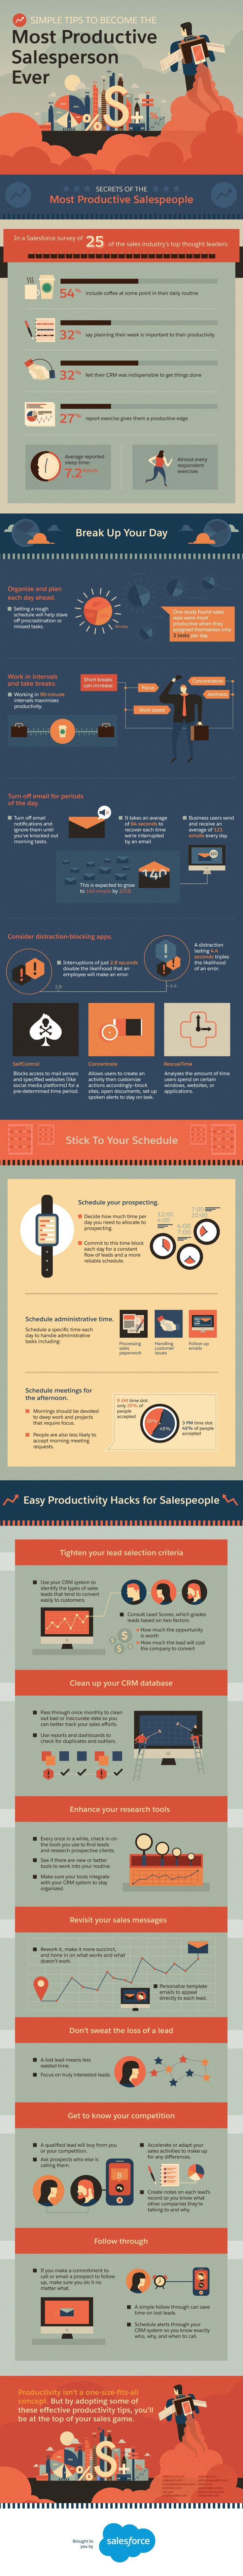 Secrets of the Most Productive Salespeople [Infographic]